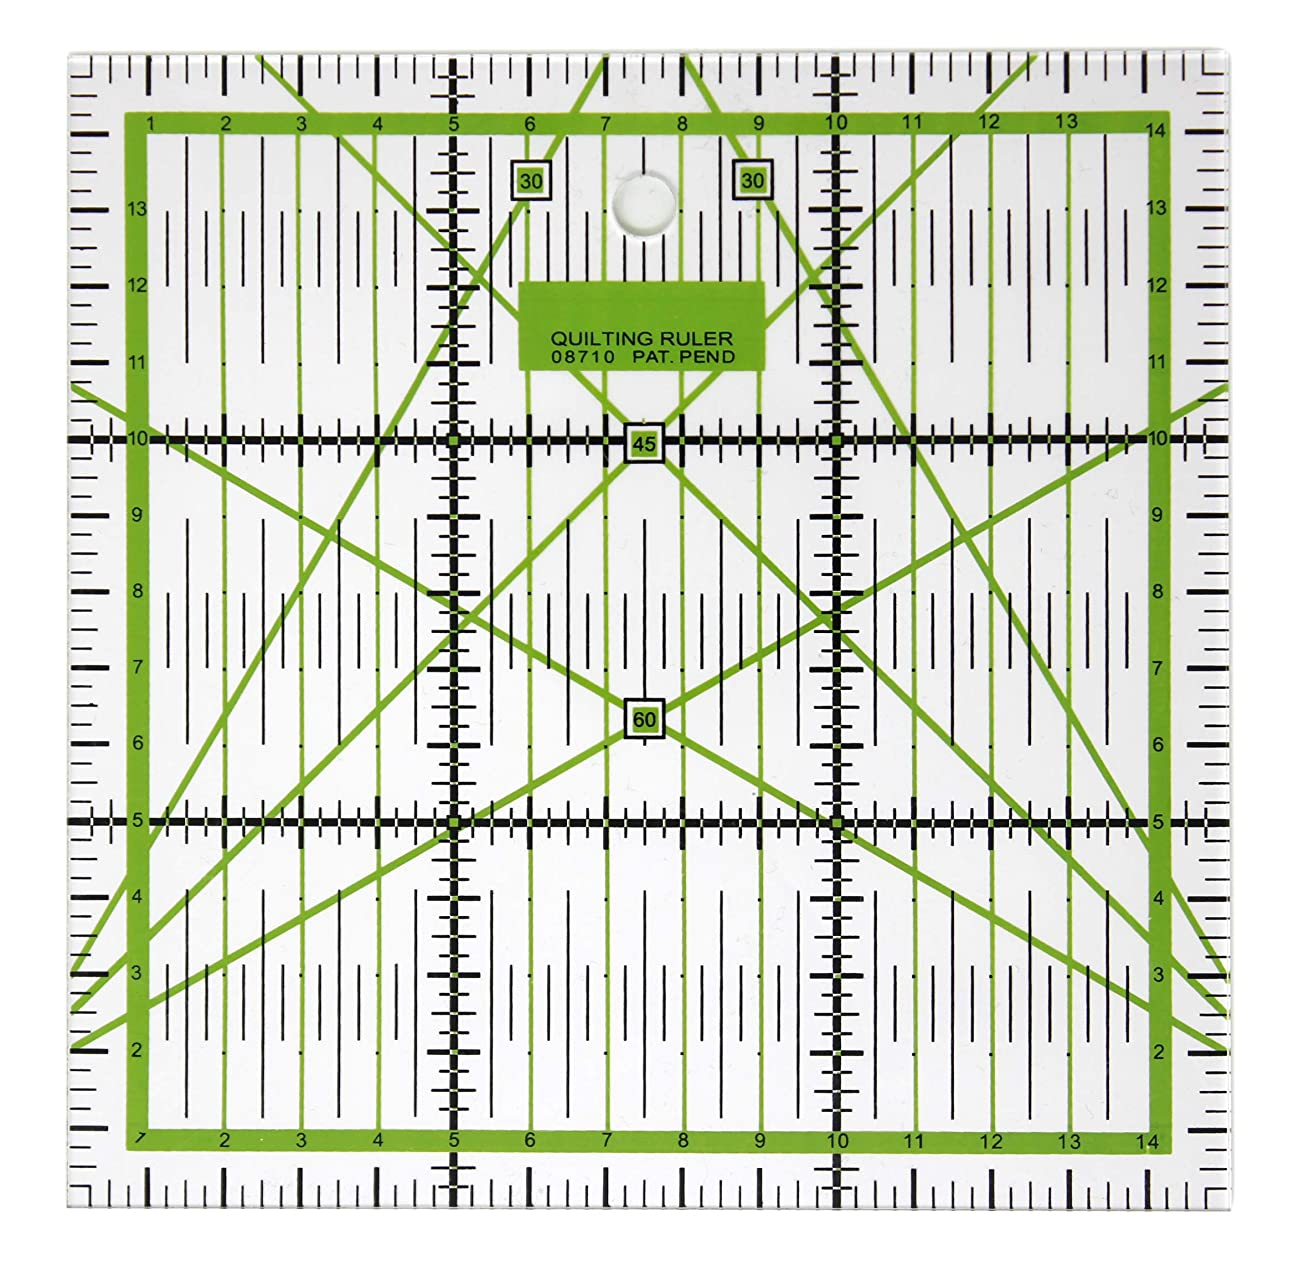 VViViD High Precision Acrylic Plastic Fabric & Crafting 15 Centimeter by 15 Centimeter Green Square Ruler Template